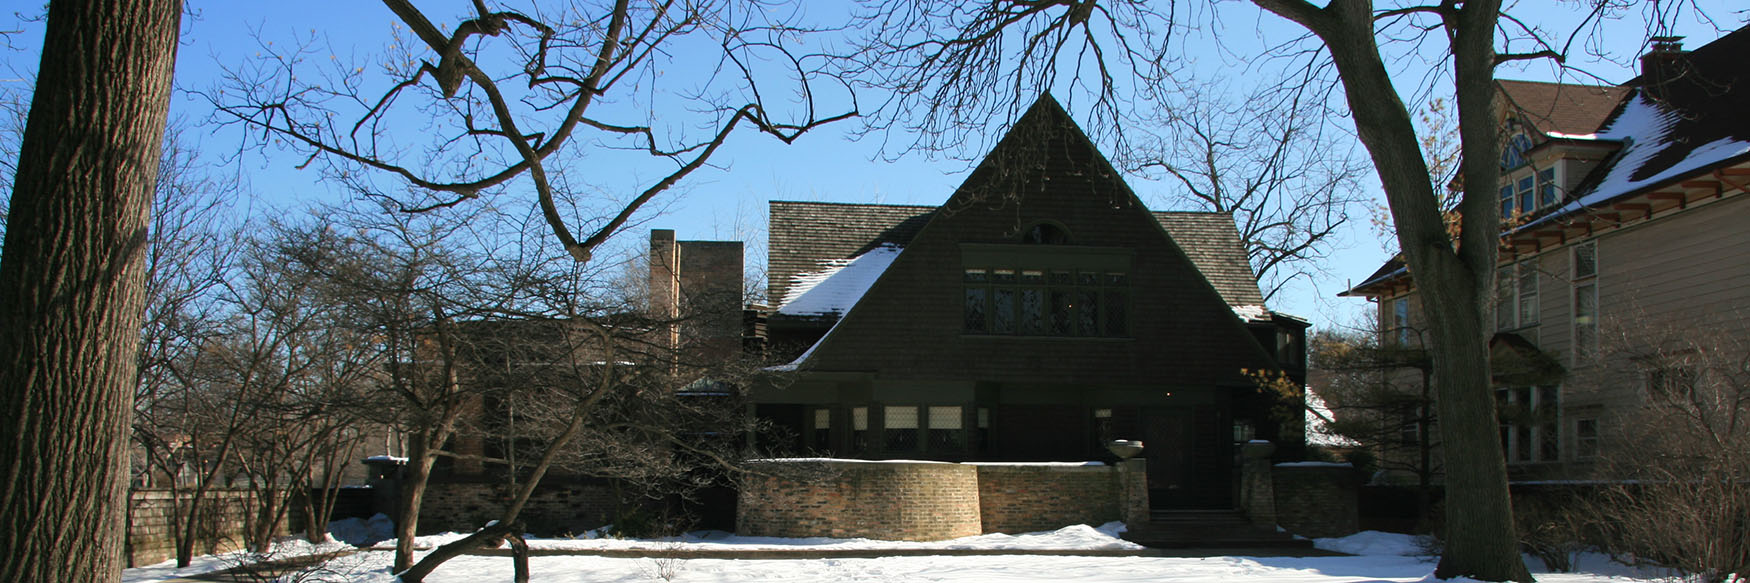 Frank Lloyd Wright's studio and home in Oak park, Chicago